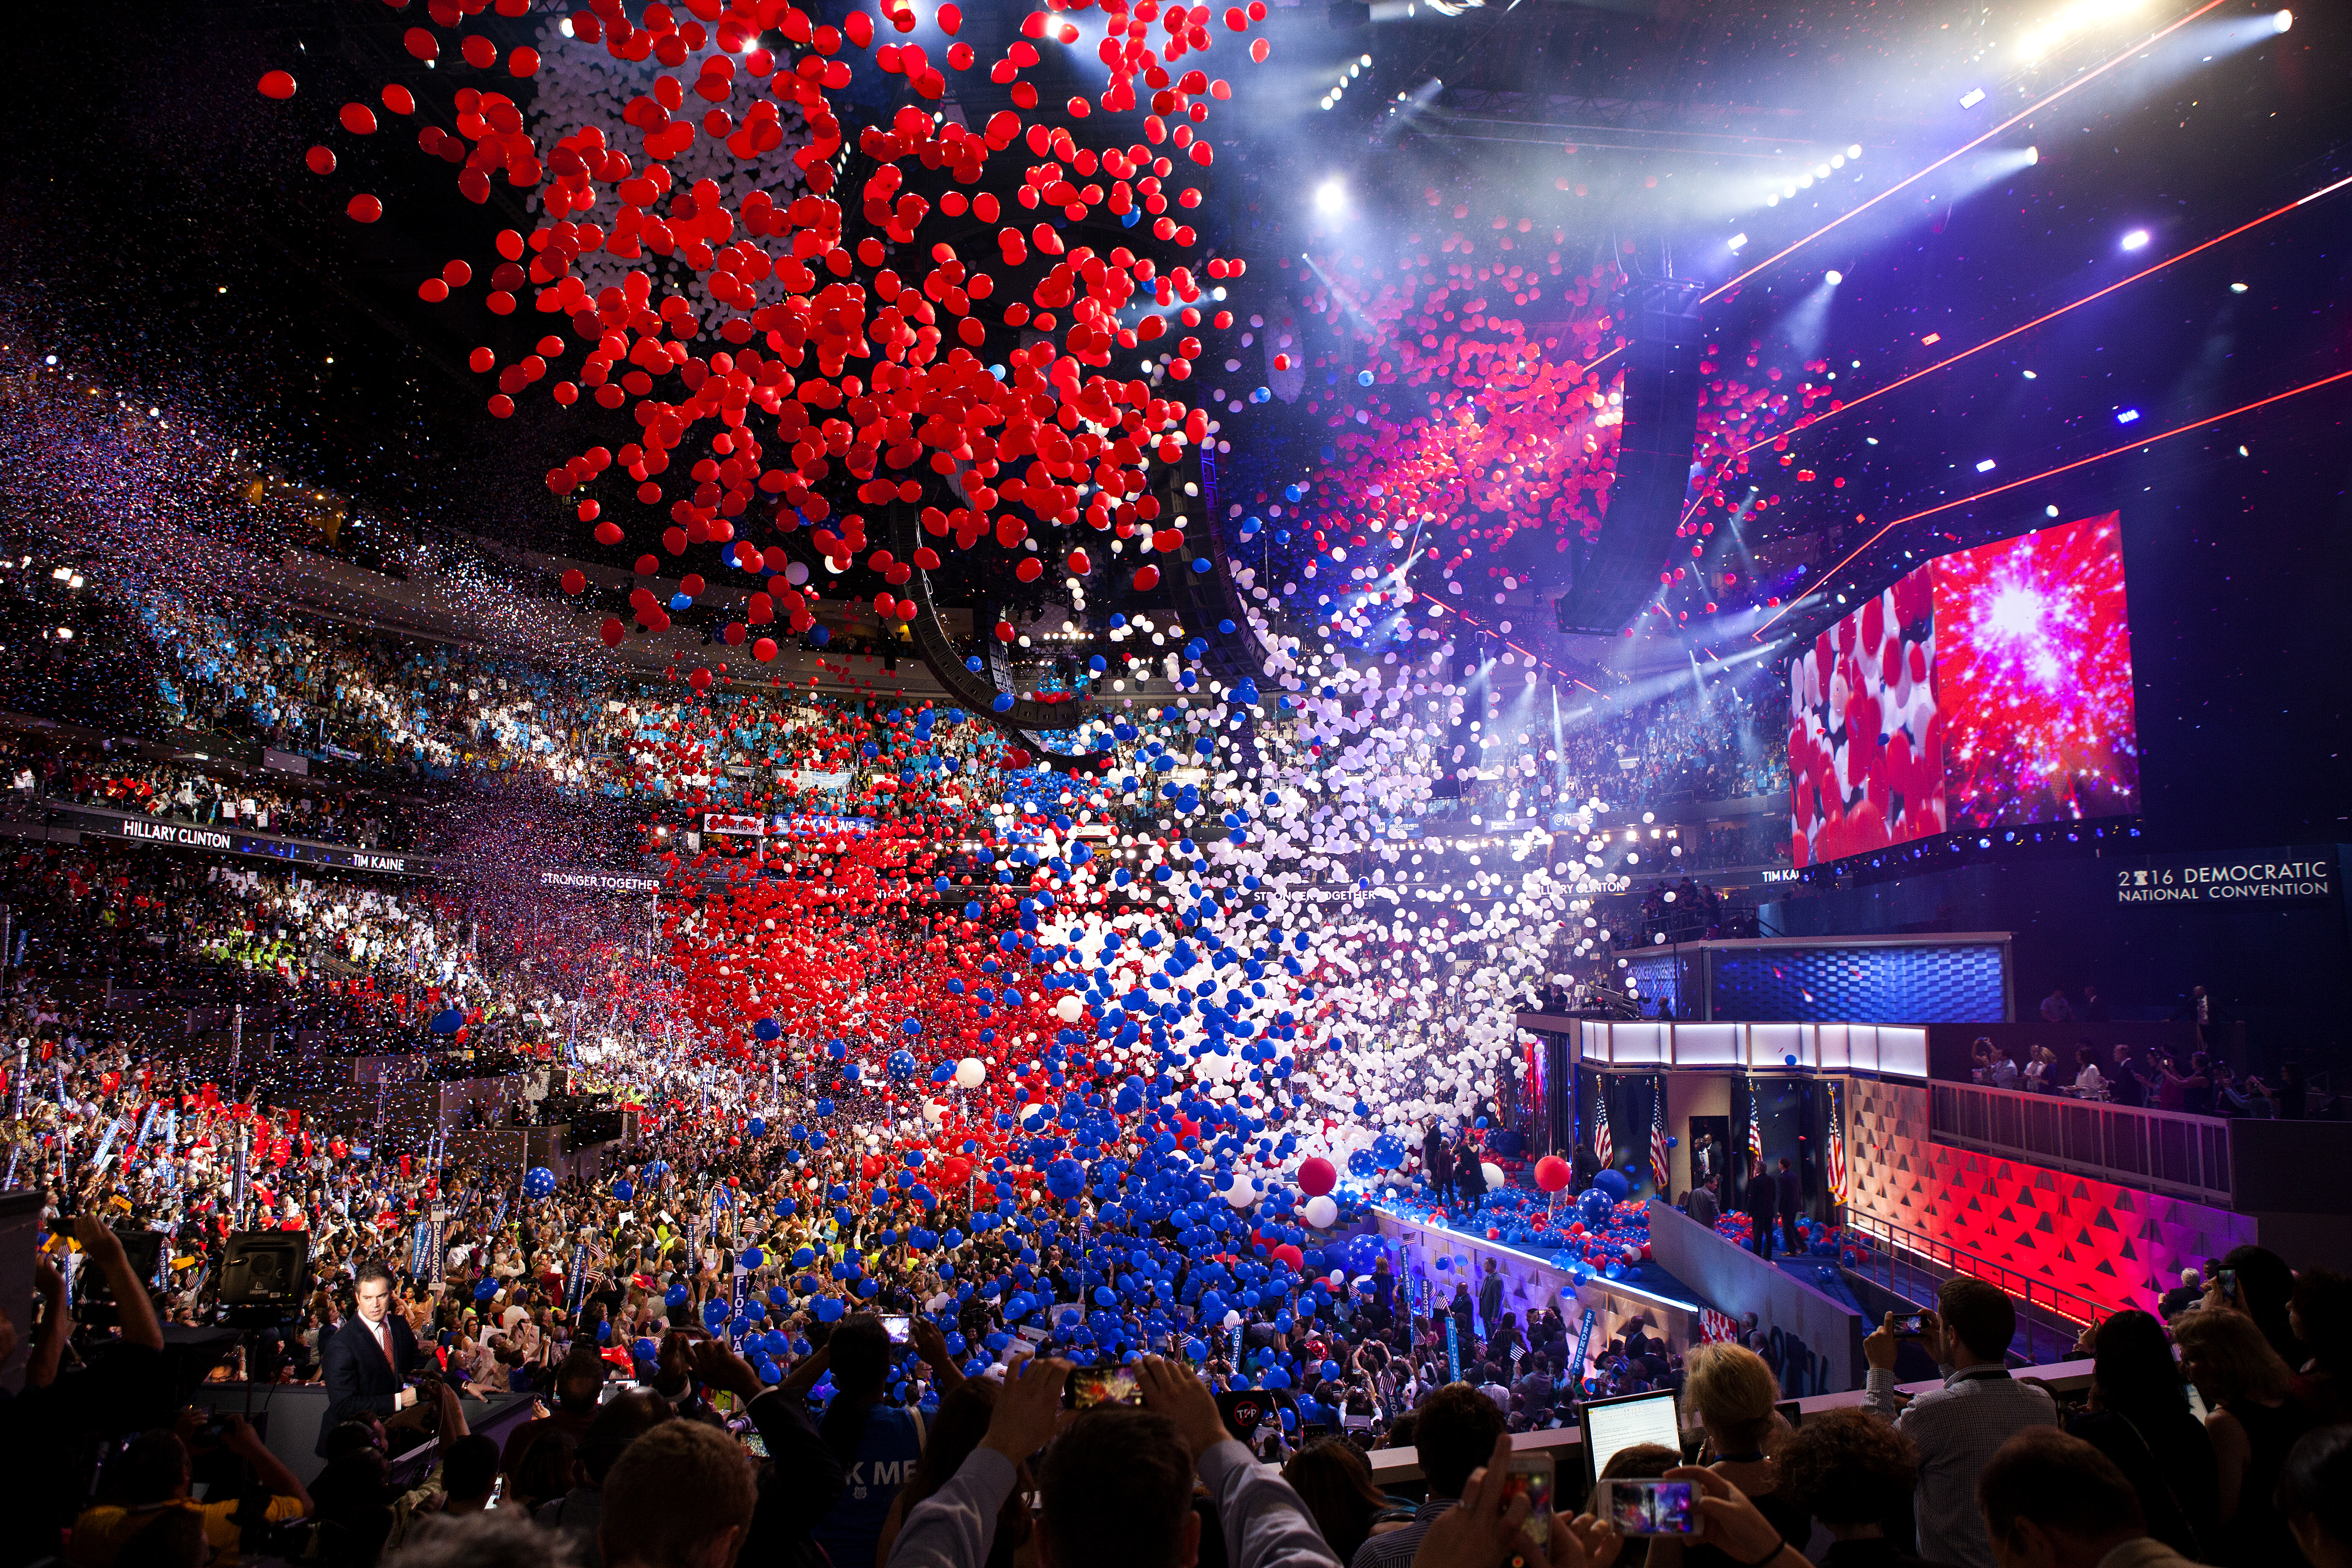 Balloons drop at the conclusion of the Democratic National Convention in Philadelphia on July 28, 2016.